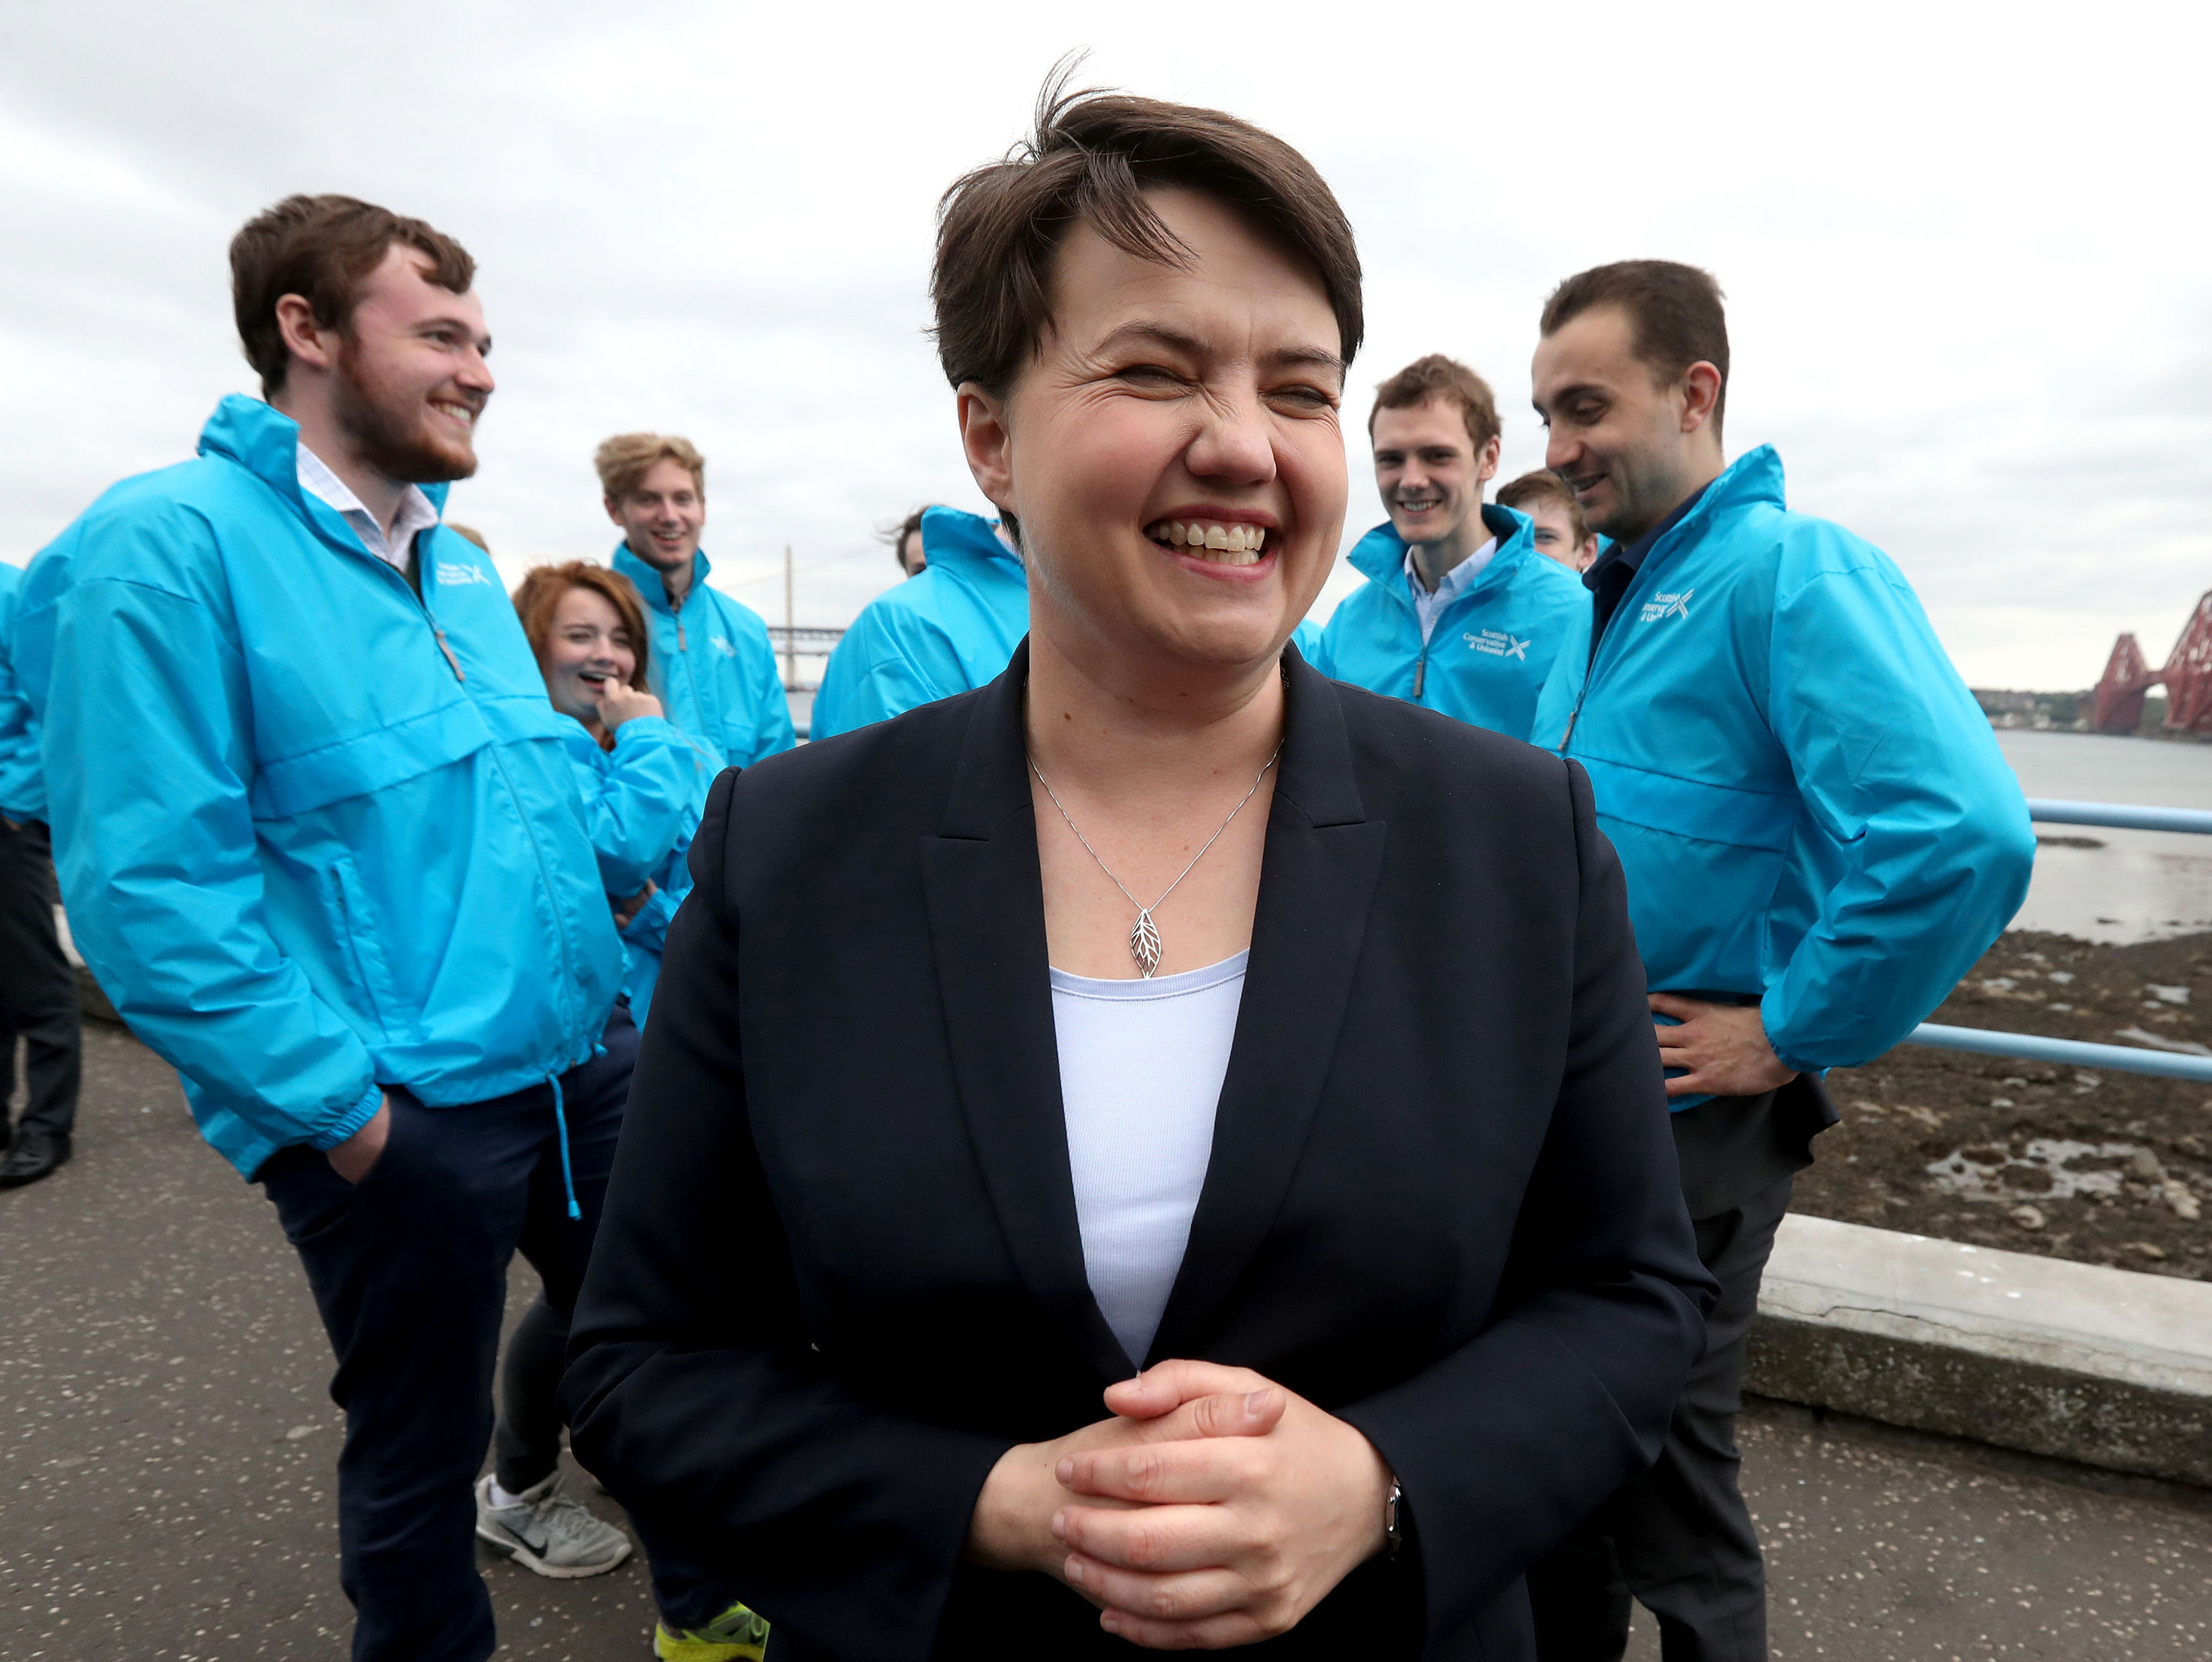 Scottish Conservative leader Ruth Davidson with supporters in South Queensferry in front of the Forth Rail Bridge whilst on the General Election campaign trail.(Andrew Milligan/PA Wire)